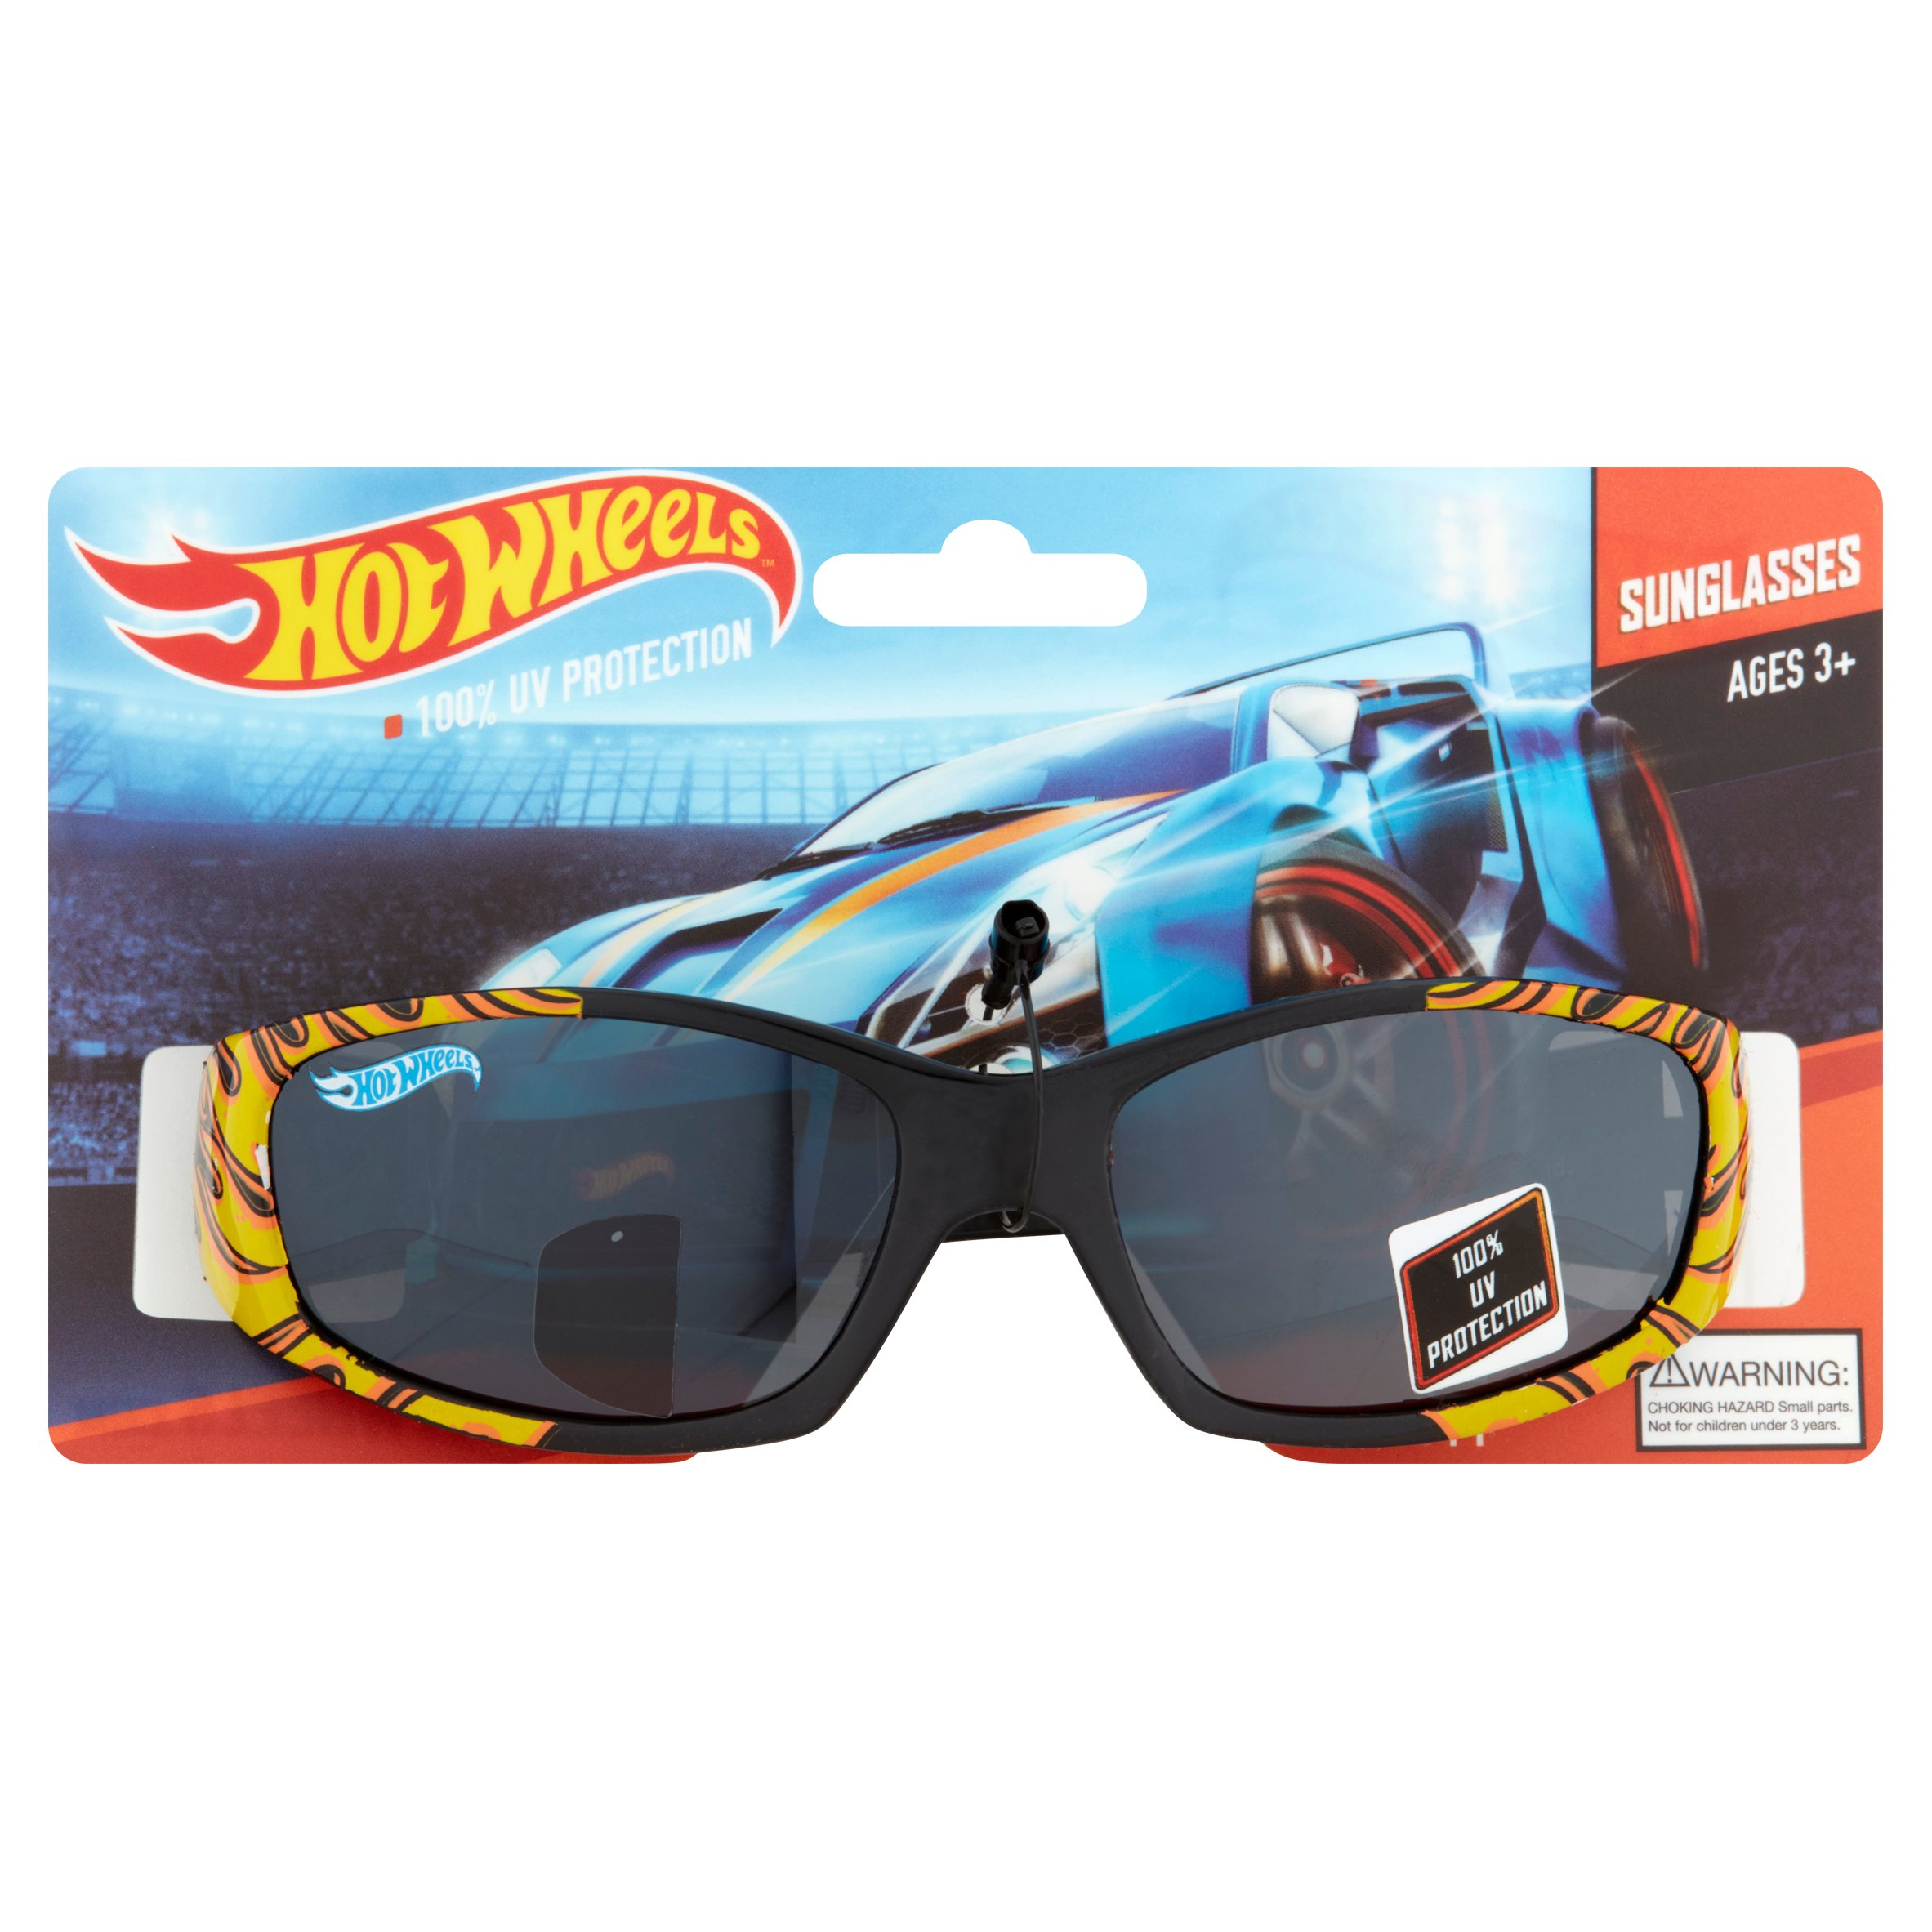 Hot Wheels Sunglasses Ages 3+